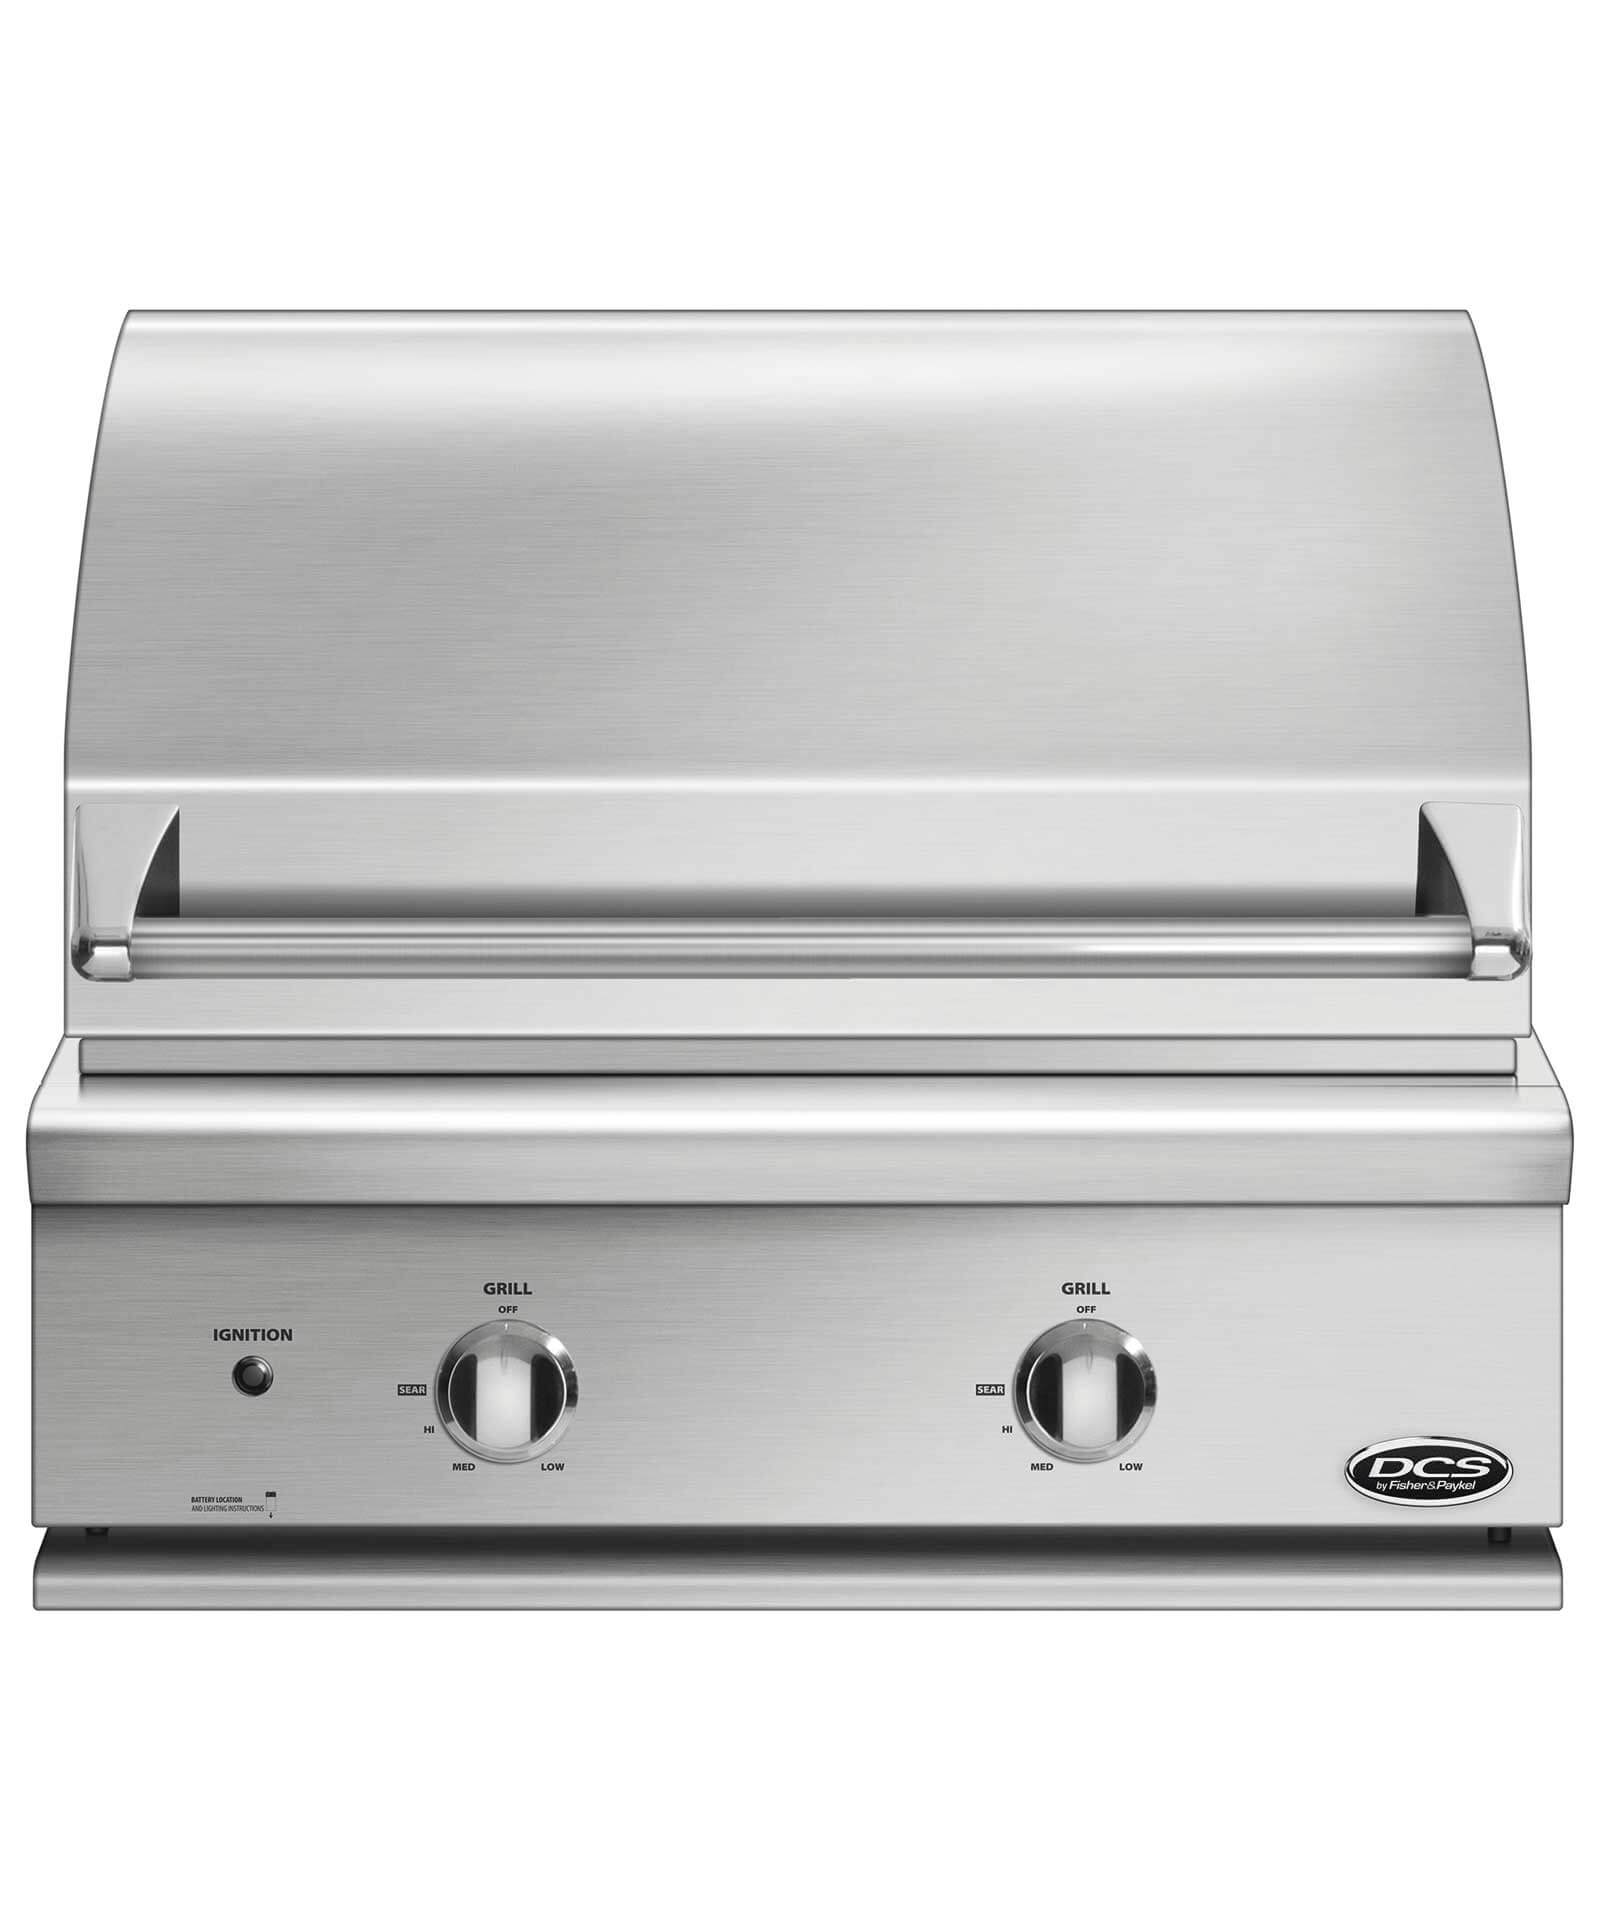 DCS grill Series 7